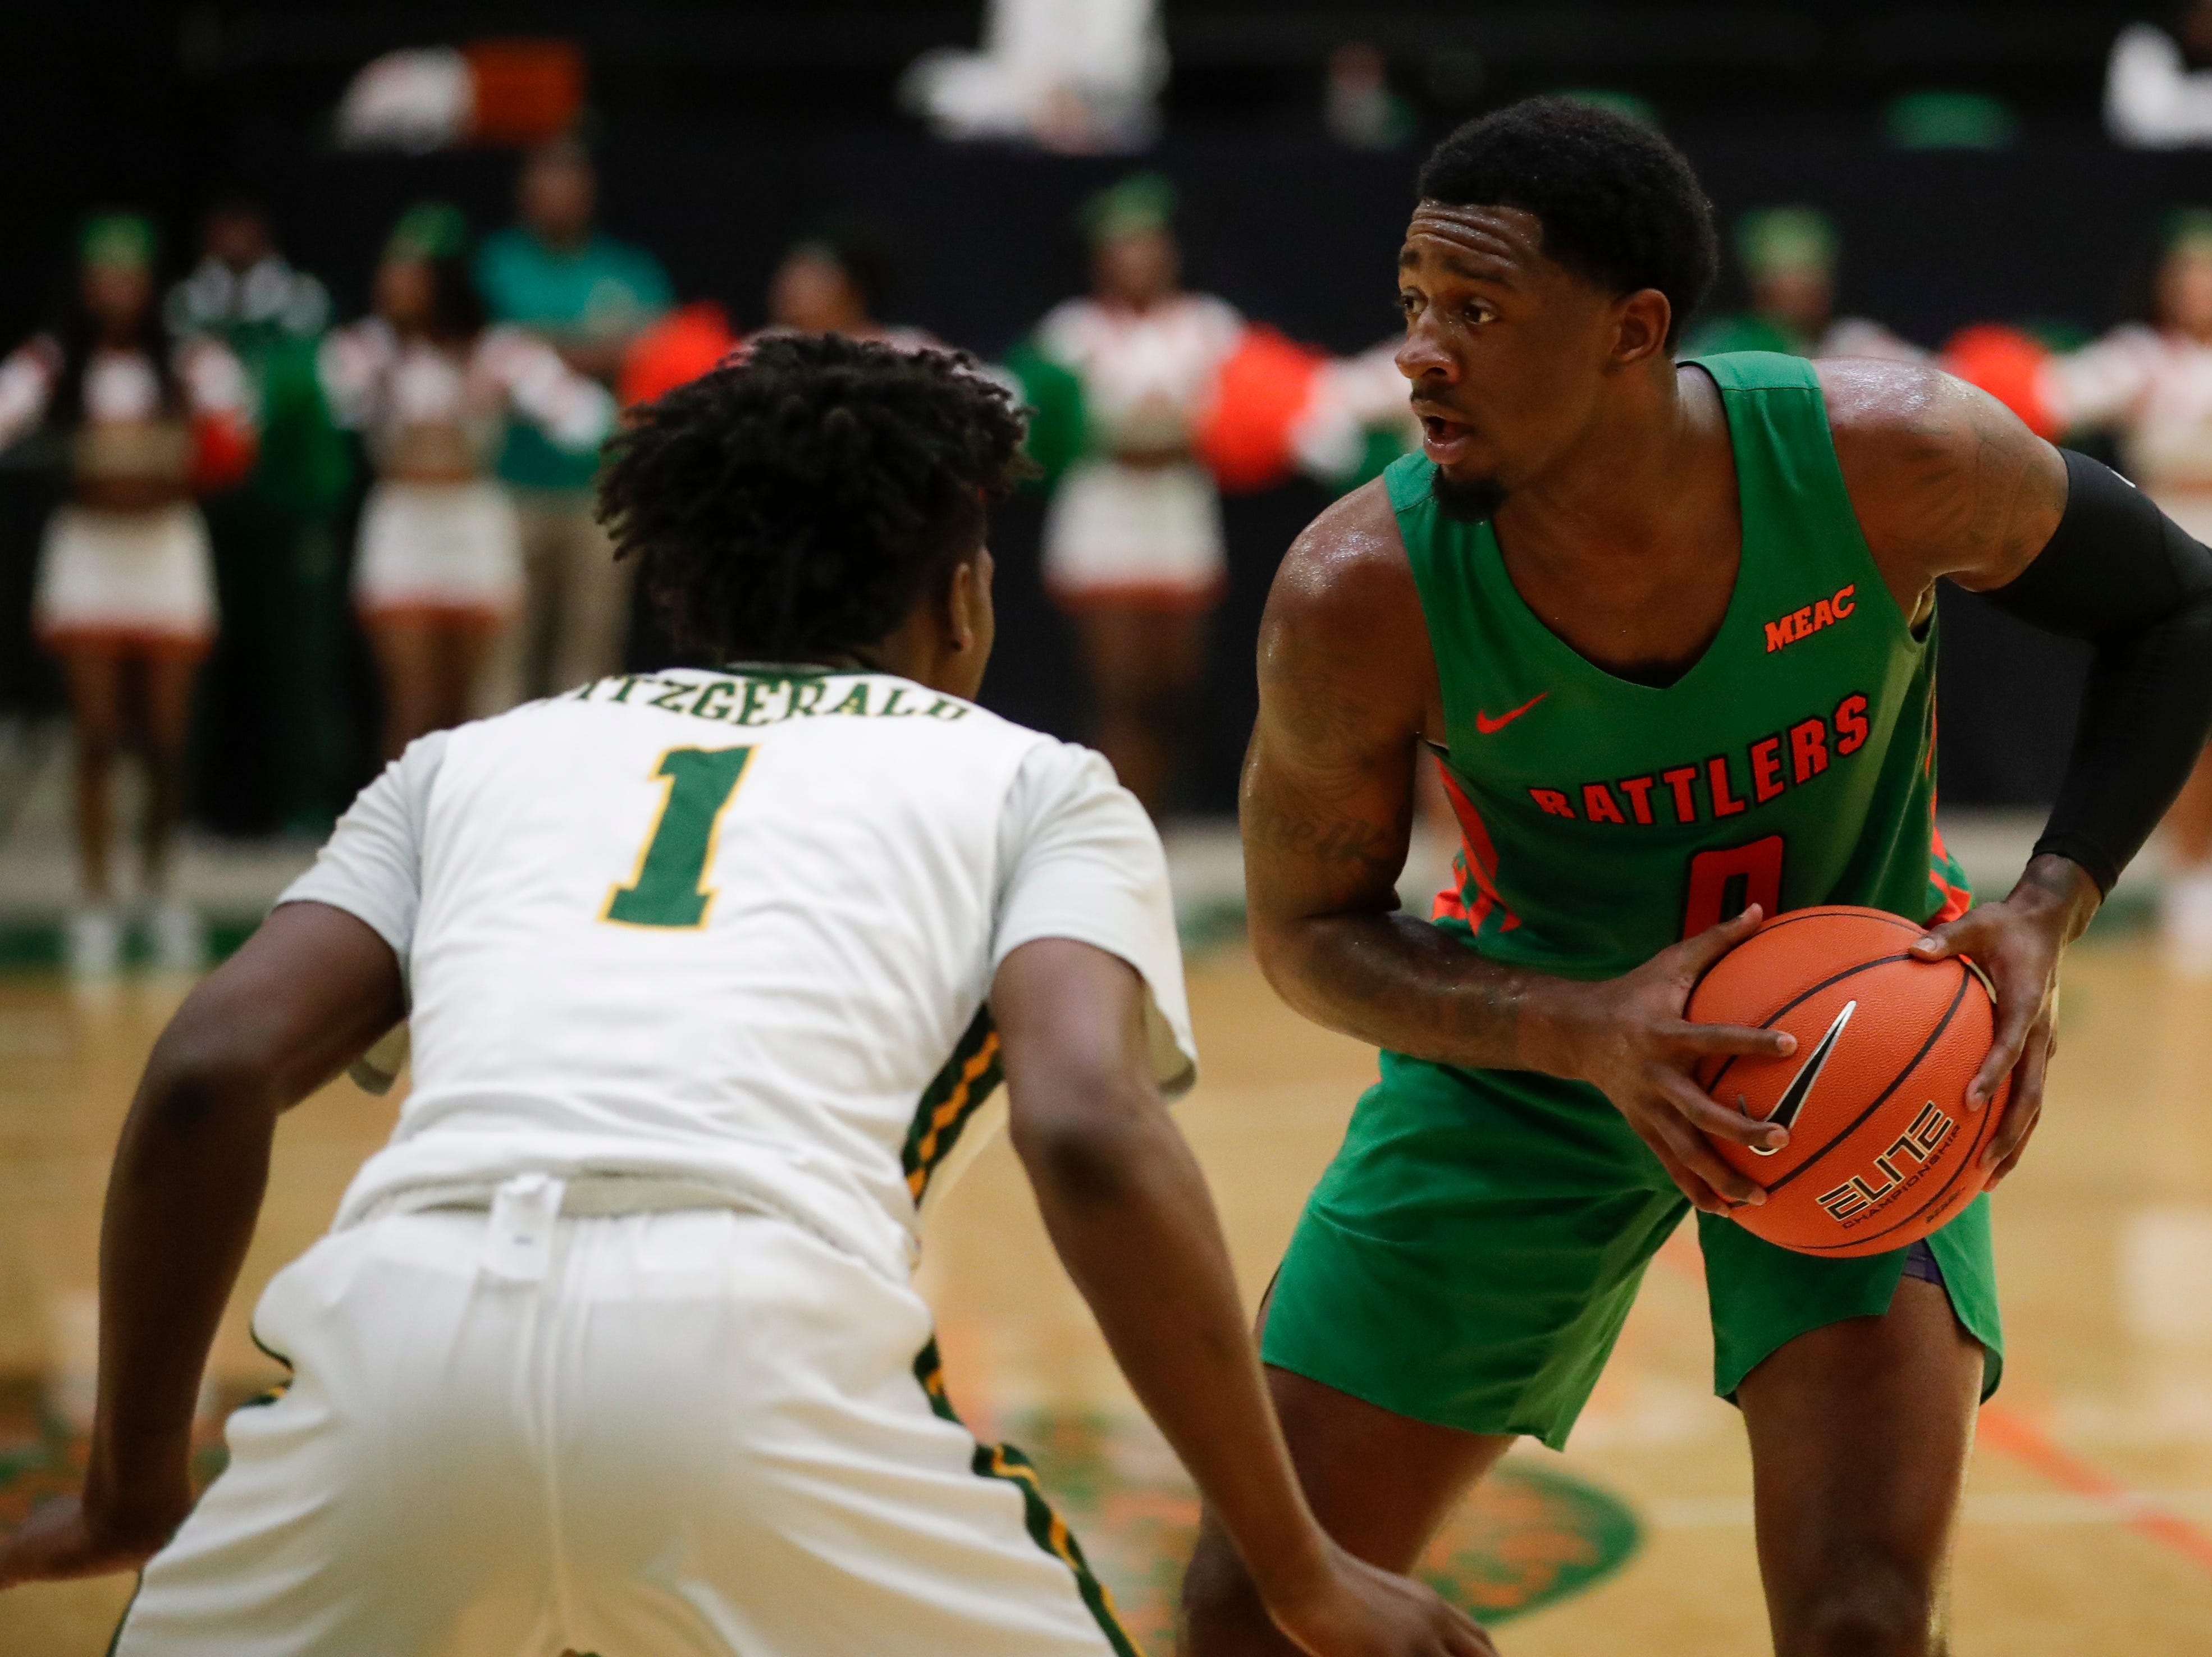 Florida A&M Rattlers forward Tracy Hector Jr. (0) looks for an opening during a game between FAMU and Norfolk State at the Alfred Lawson Jr. Multipurpose Center Monday, Feb. 11, 2019.